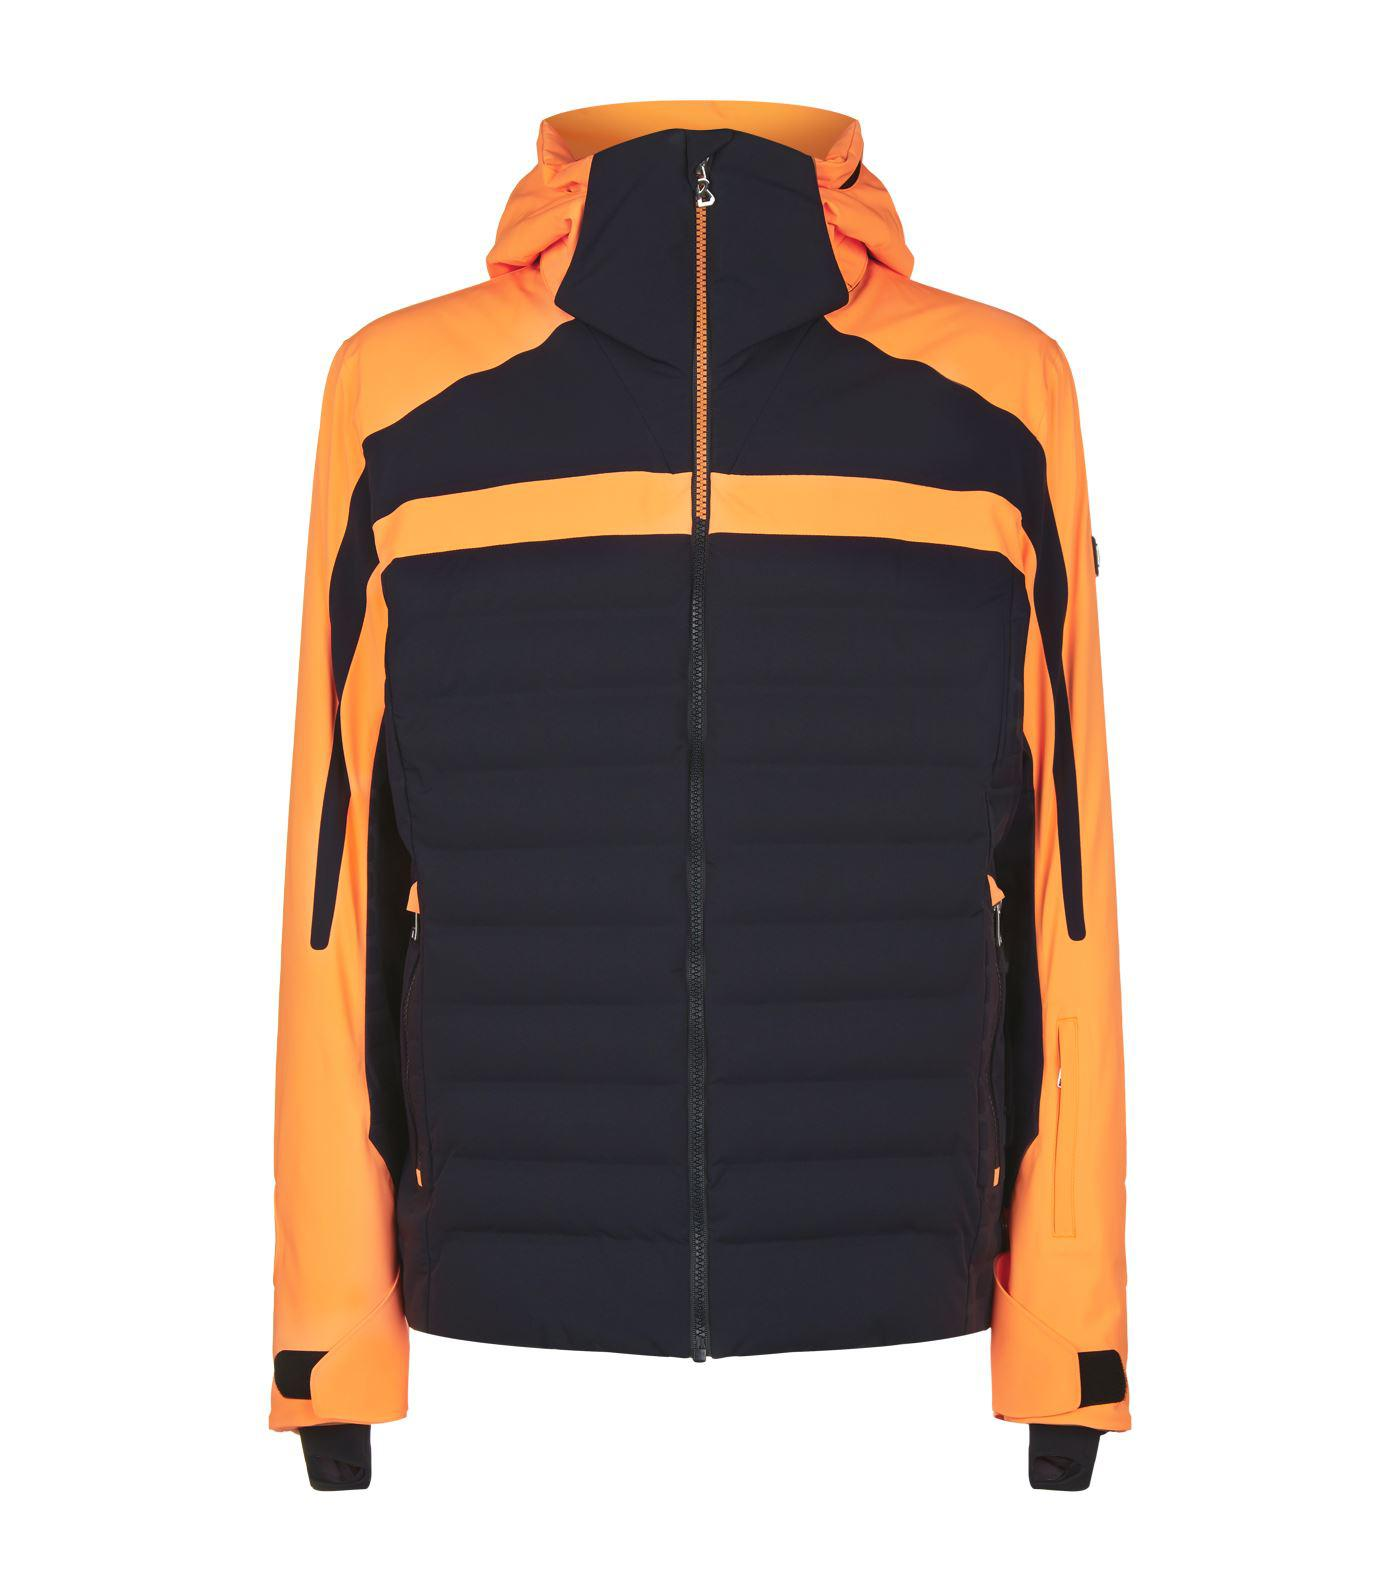 Lyst bogner lech ski jacket in orange for men jpg 1400x1592 Orange bogner  ski sale 7c93a526e